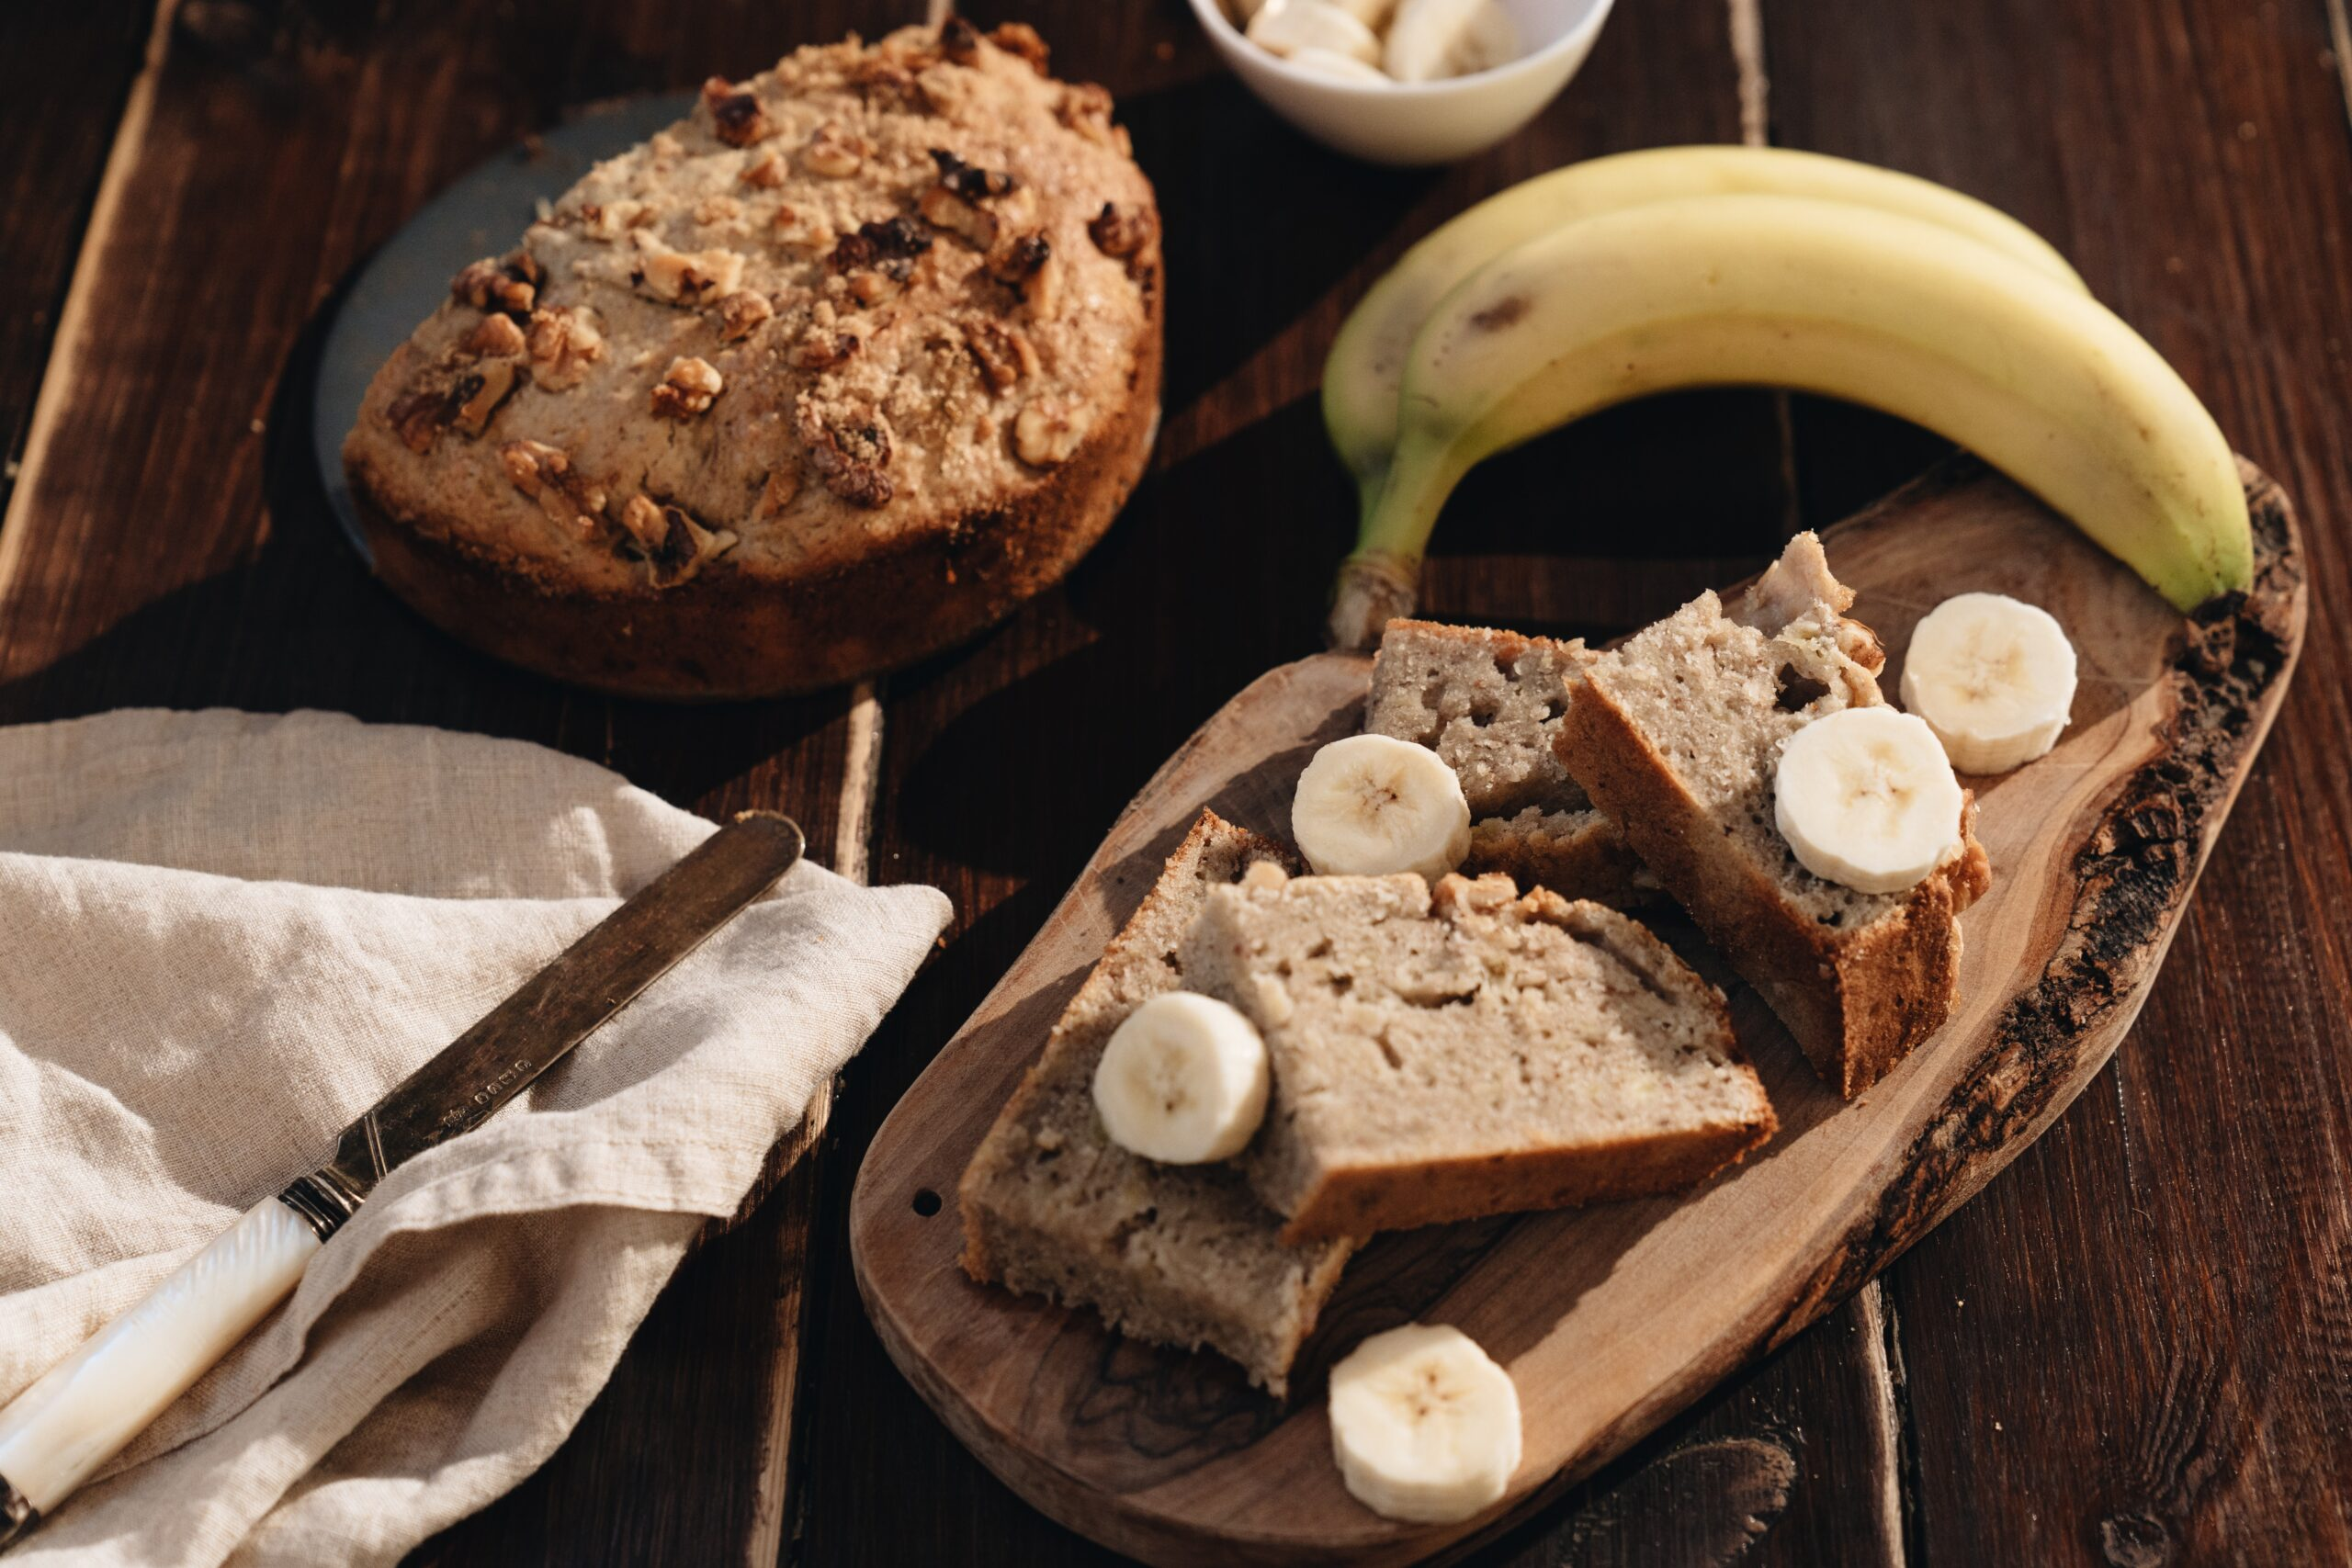 The Best Banana Bread That Nobody is Discussing